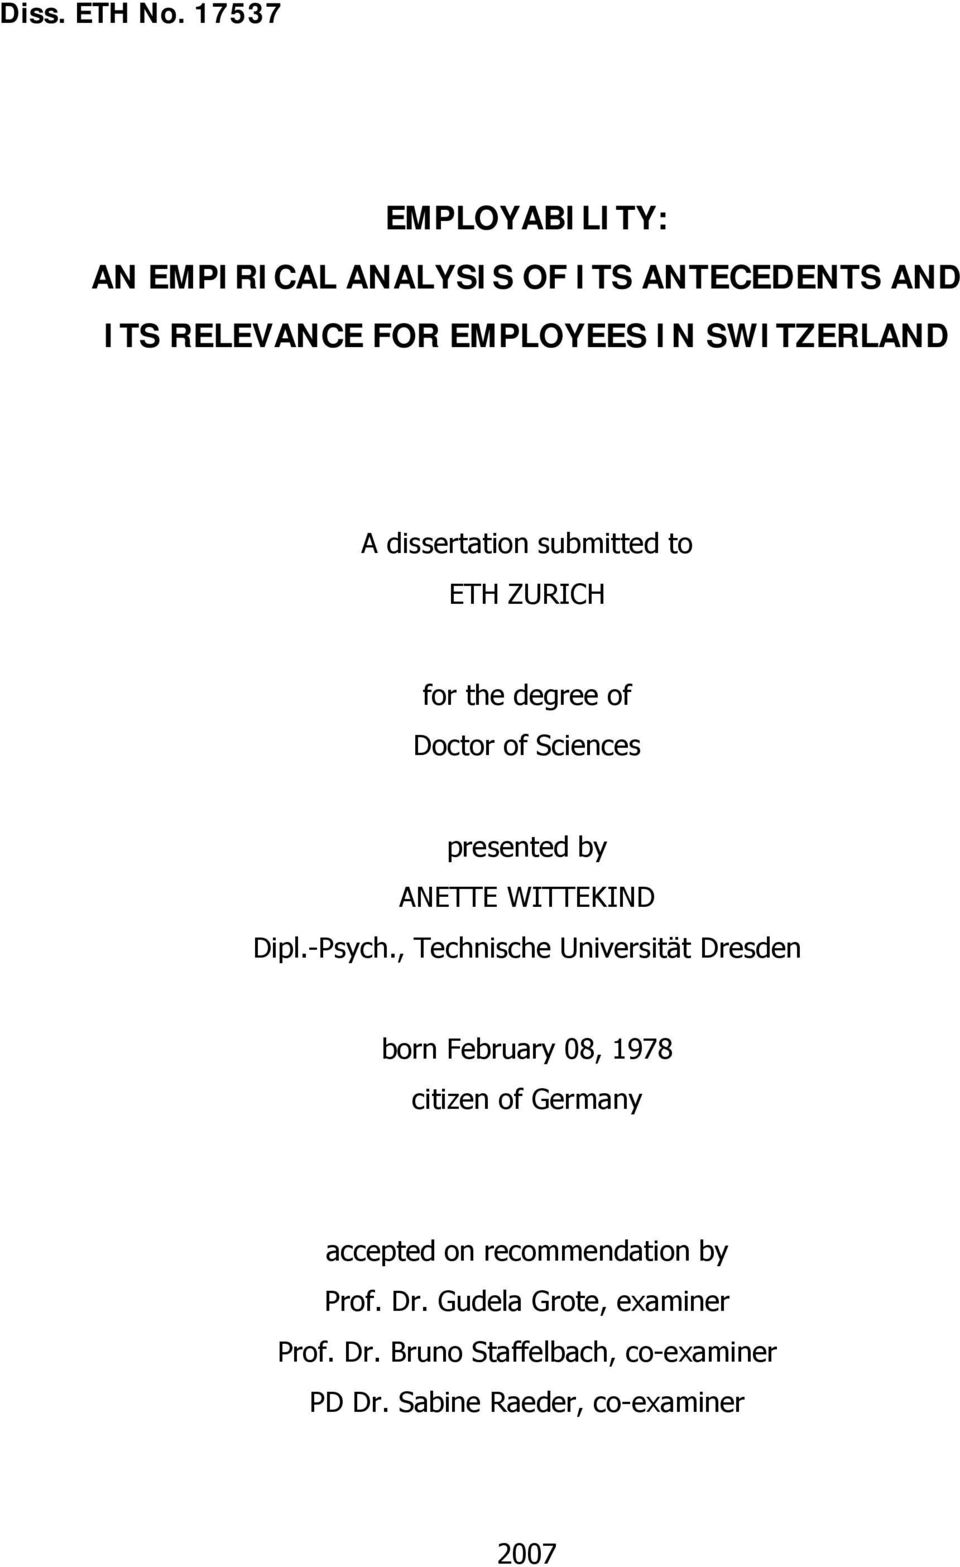 dissertation submitted to ETH ZURICH for the degree of Doctor of Sciences presented by ANETTE WITTEKIND Dipl.